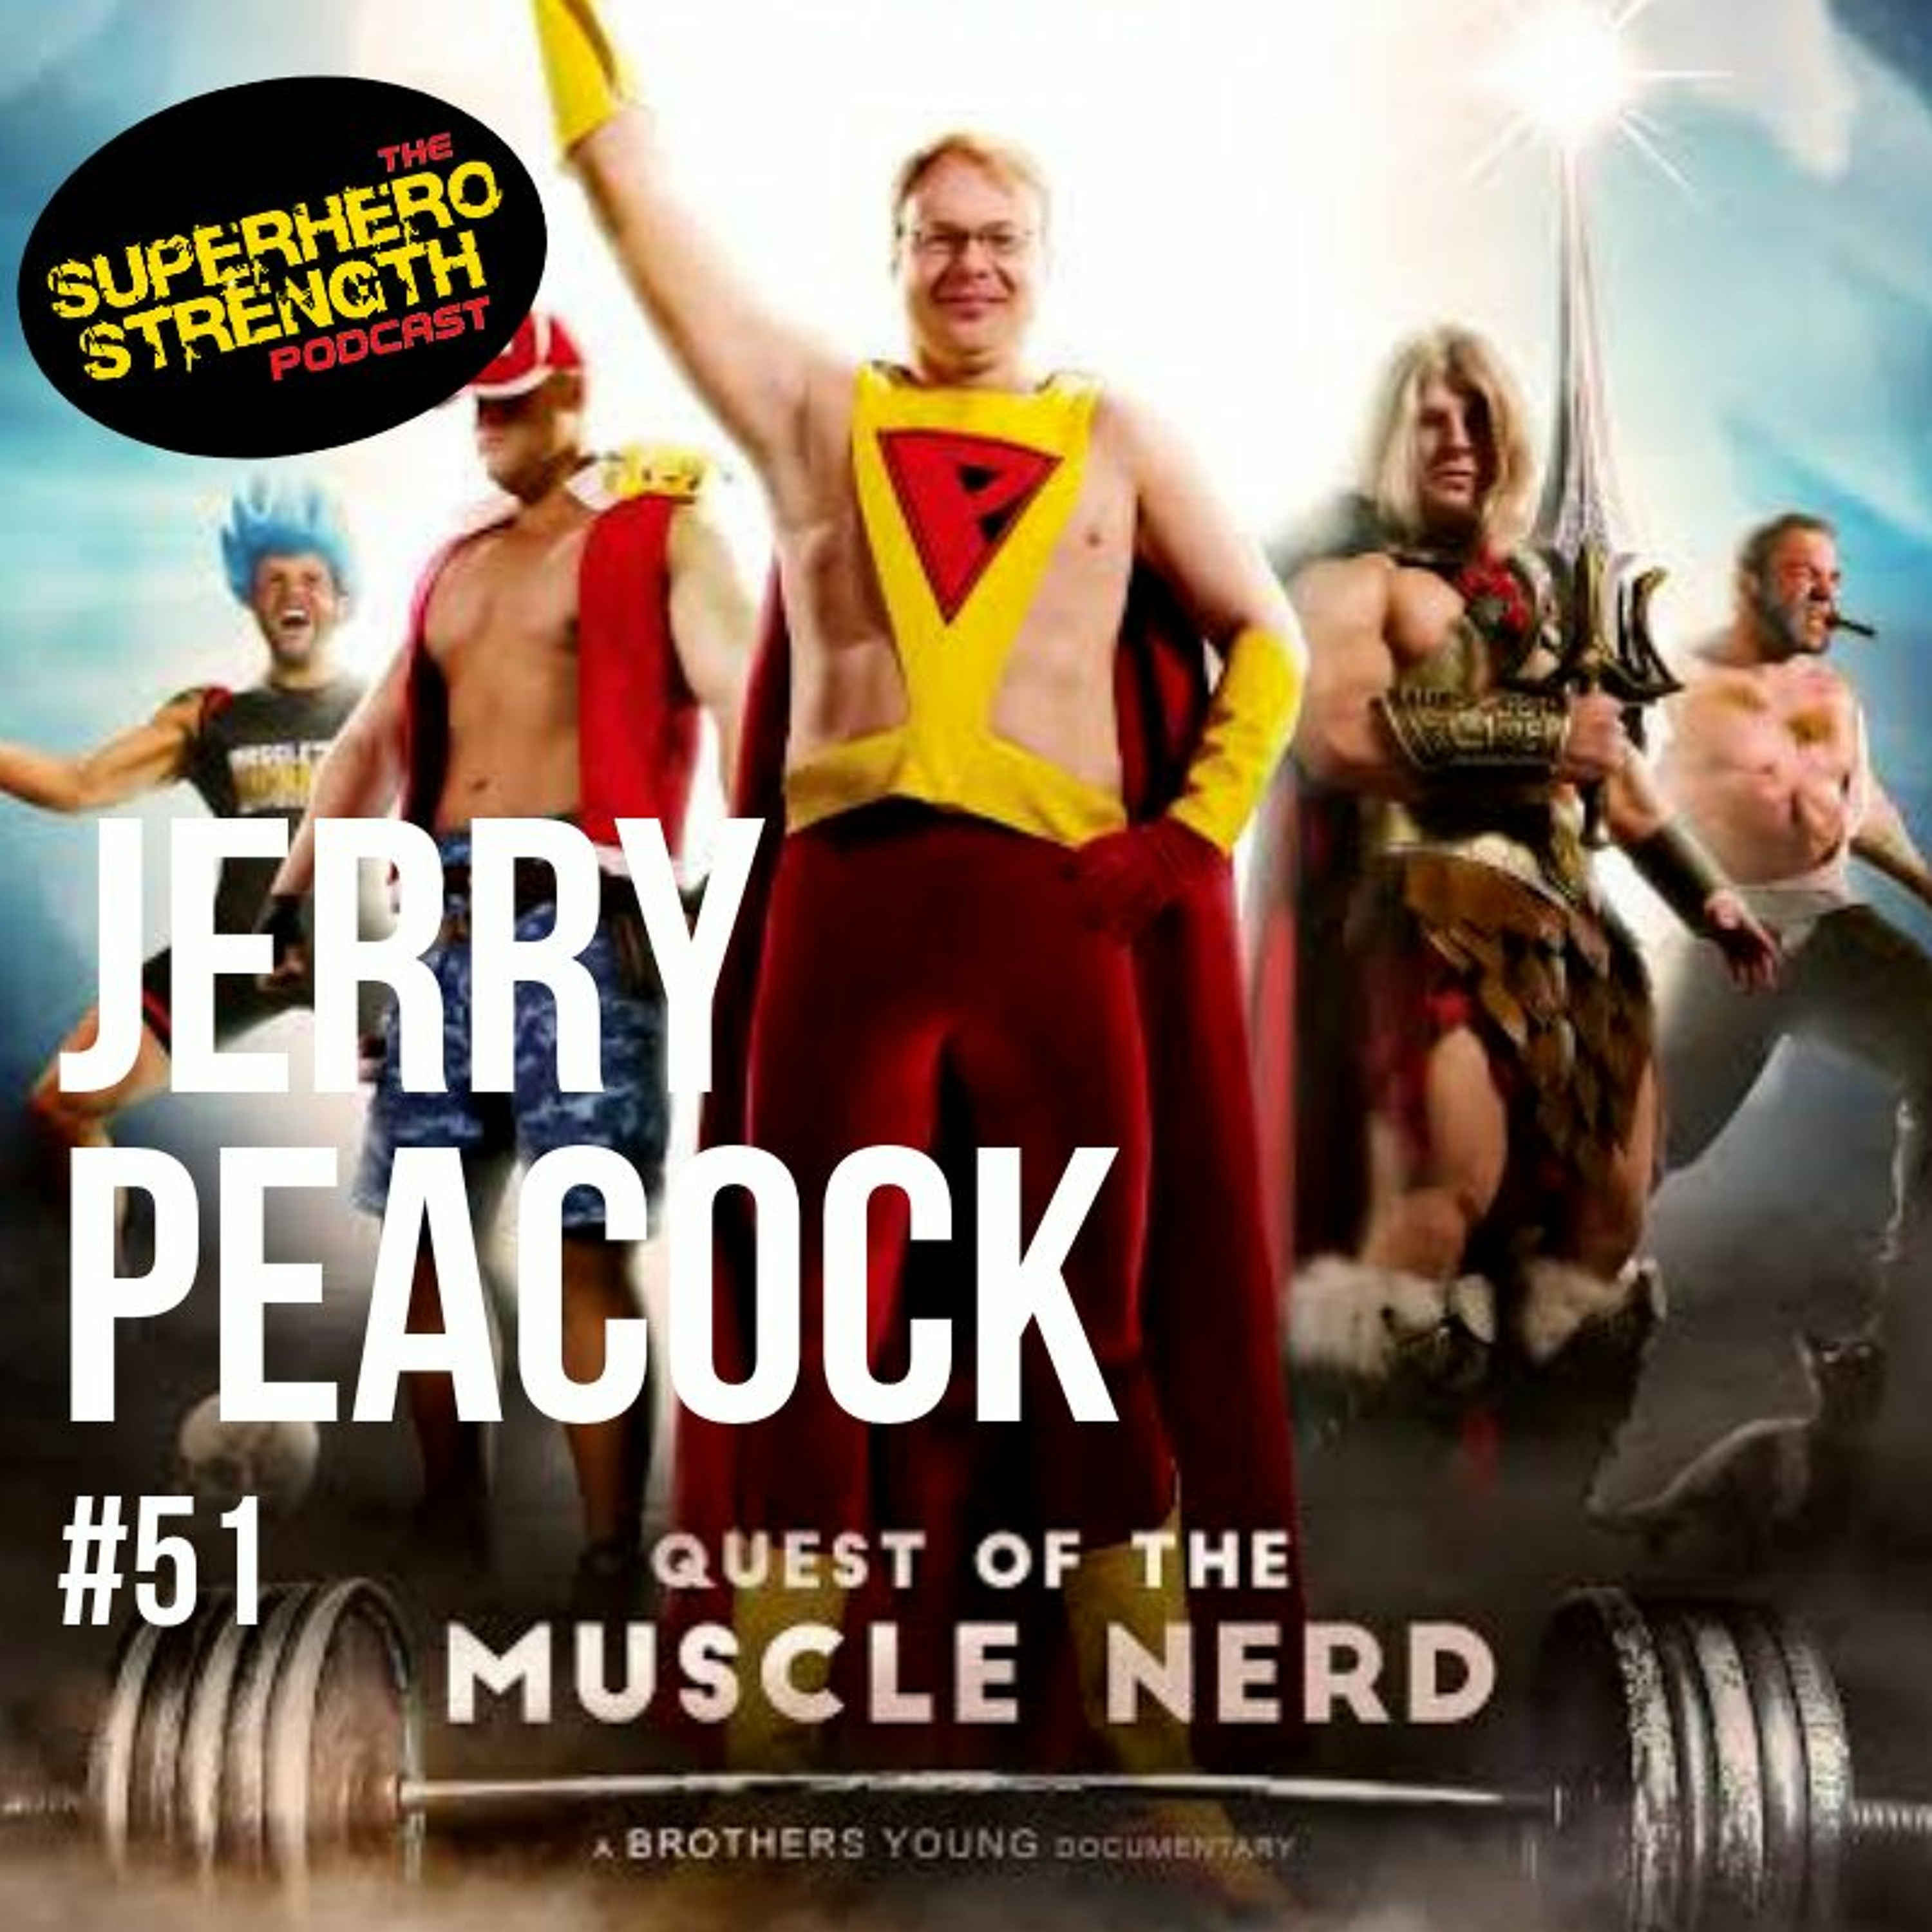 Ep51: Jerry Peacock [Quest Of The Muscle Nerd]